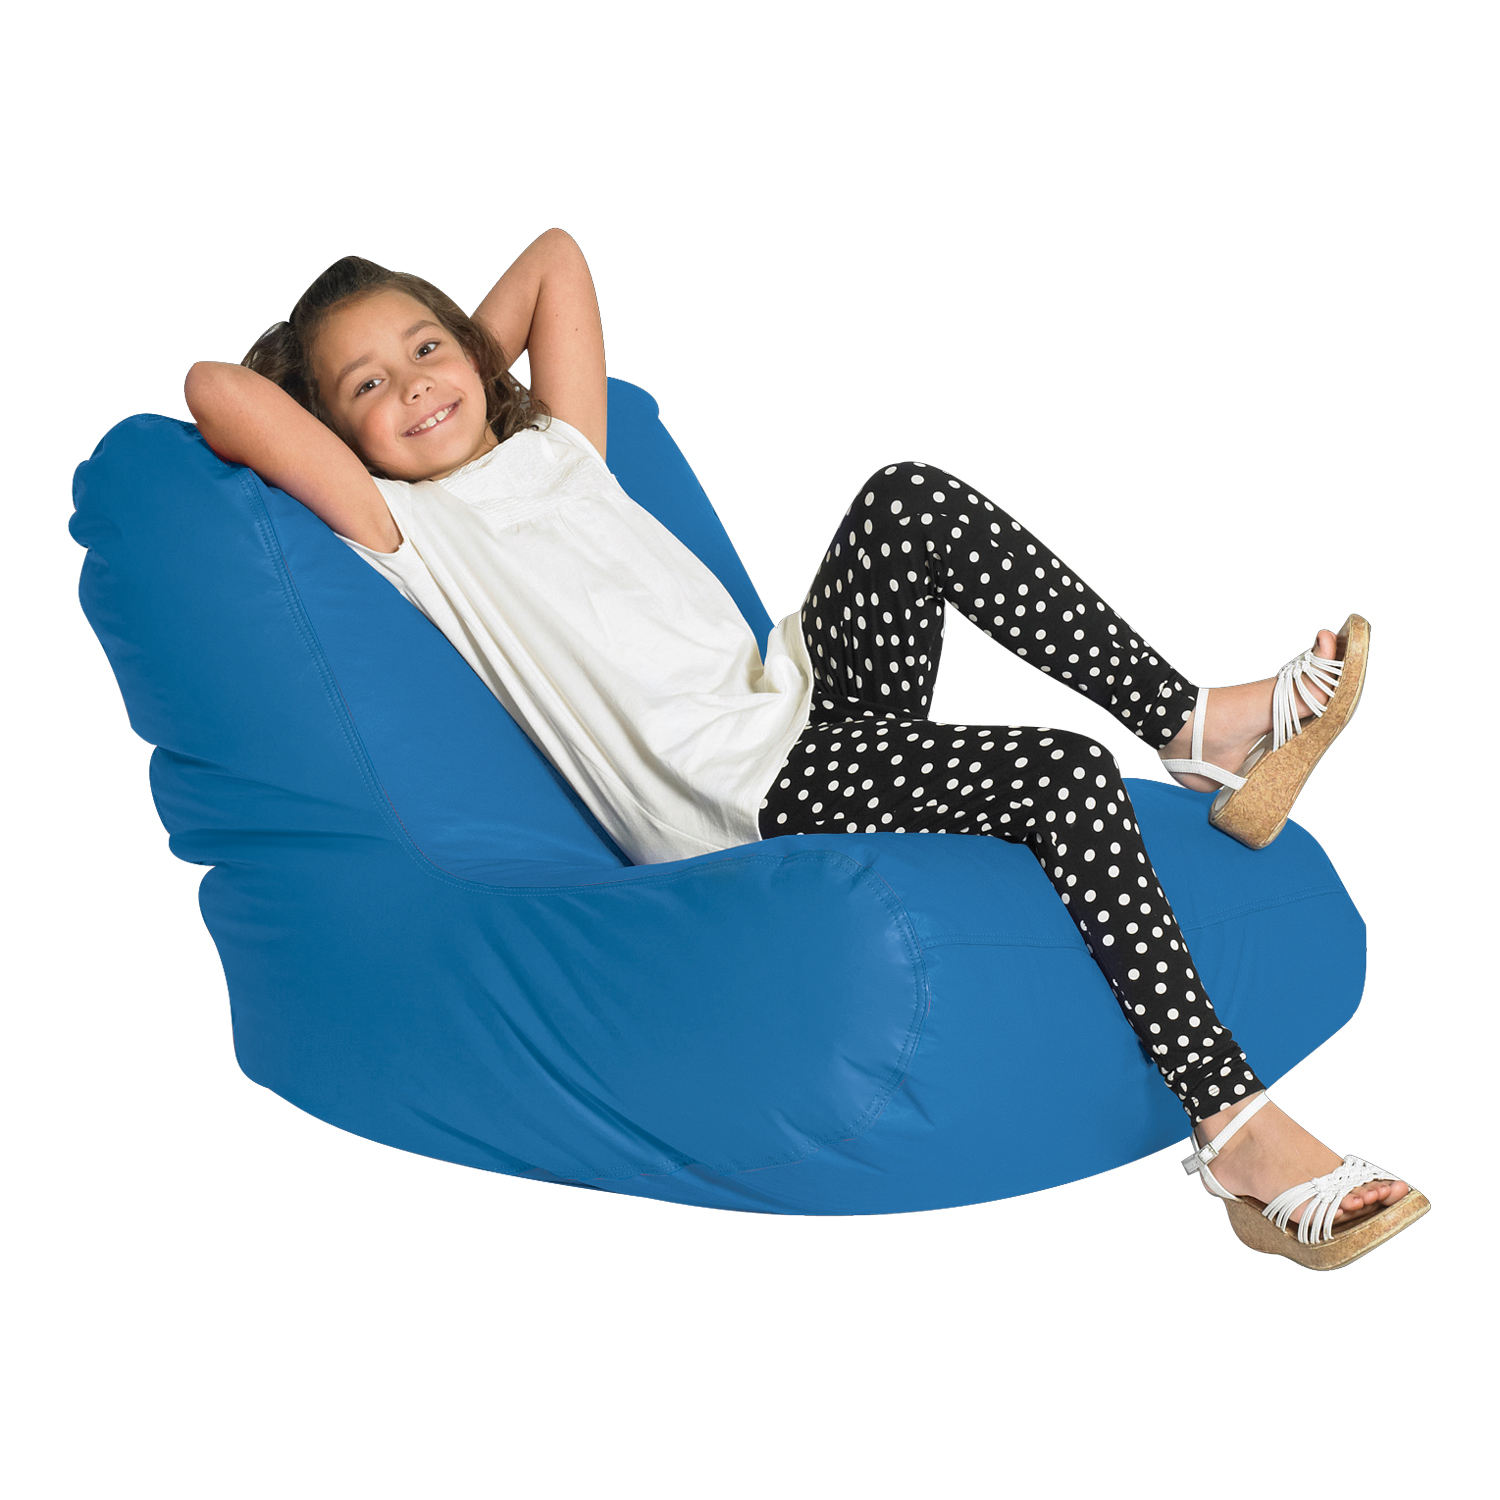 ... Bean Bag Chair. Current Image